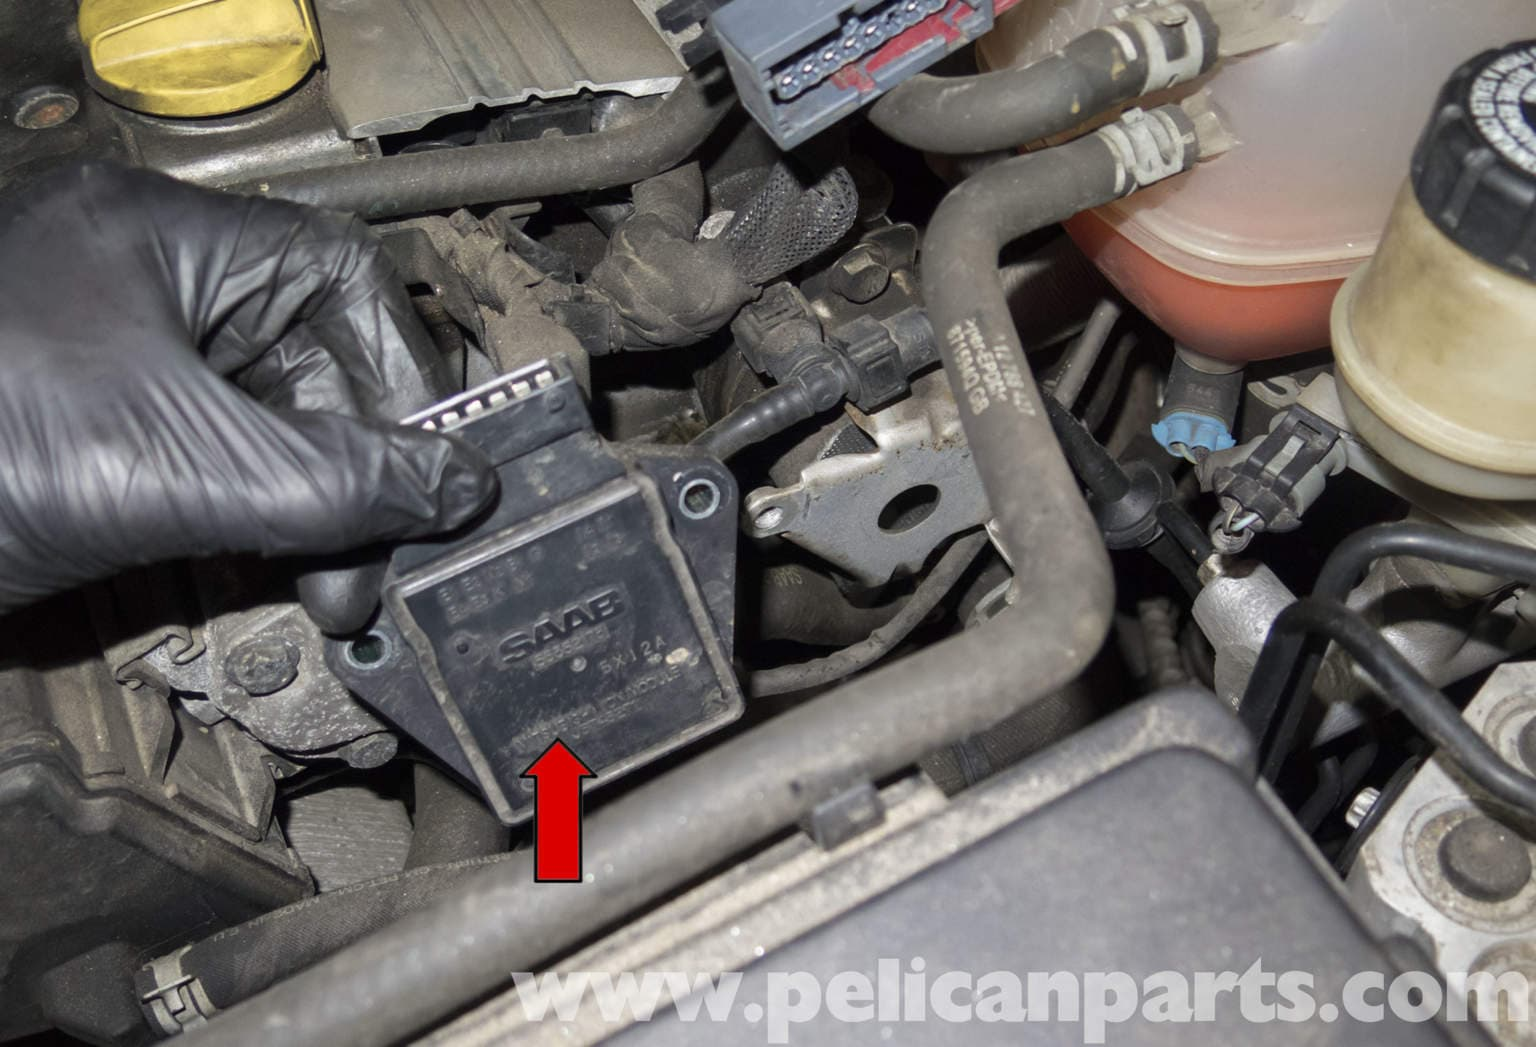 saab 9 5 engine diagram 480v 3 phase to 120 240v transformer wiring 9-3 ignition module replacement (2006-2007) | pelican parts diy maintenance article